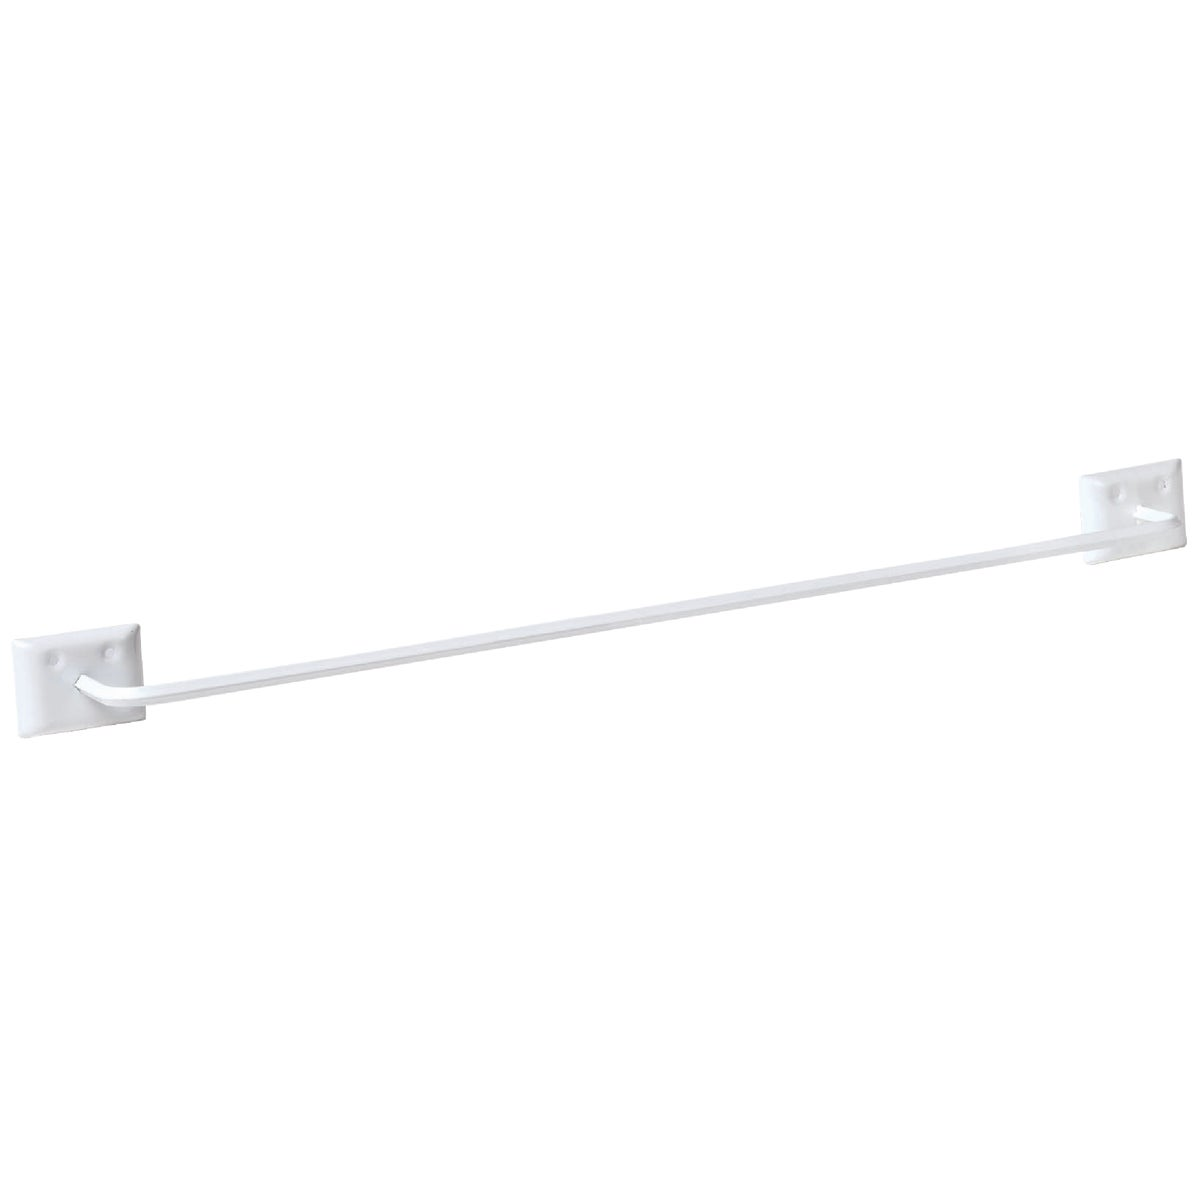 "24"" WHT TOWEL BAR - 48170 by Decko Bath"